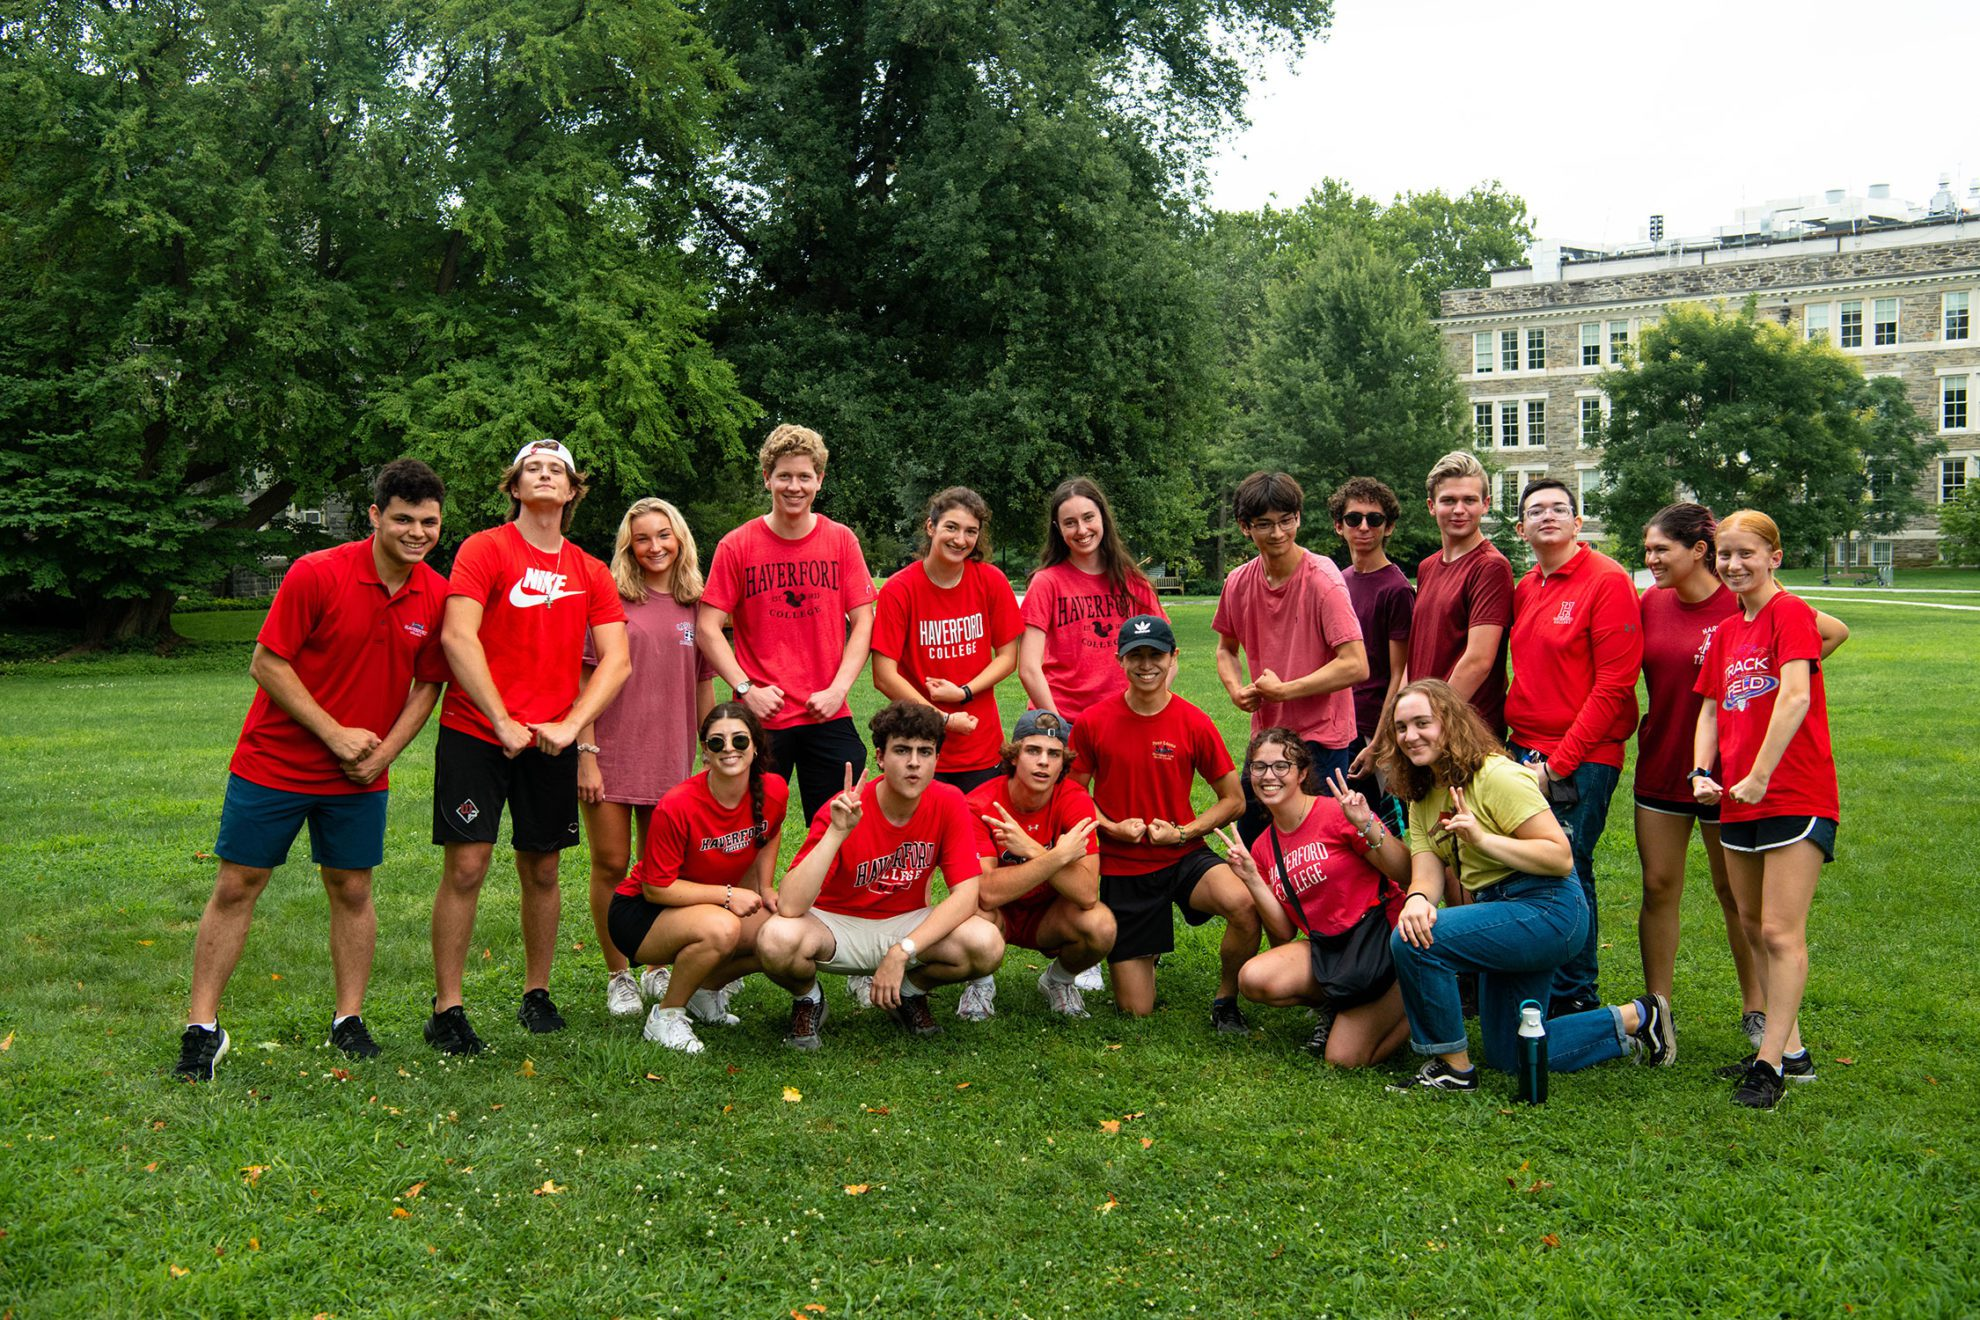 """A group of students in red t-shirts, many reading """"Haverford"""" across the front, pose on Founders Green."""